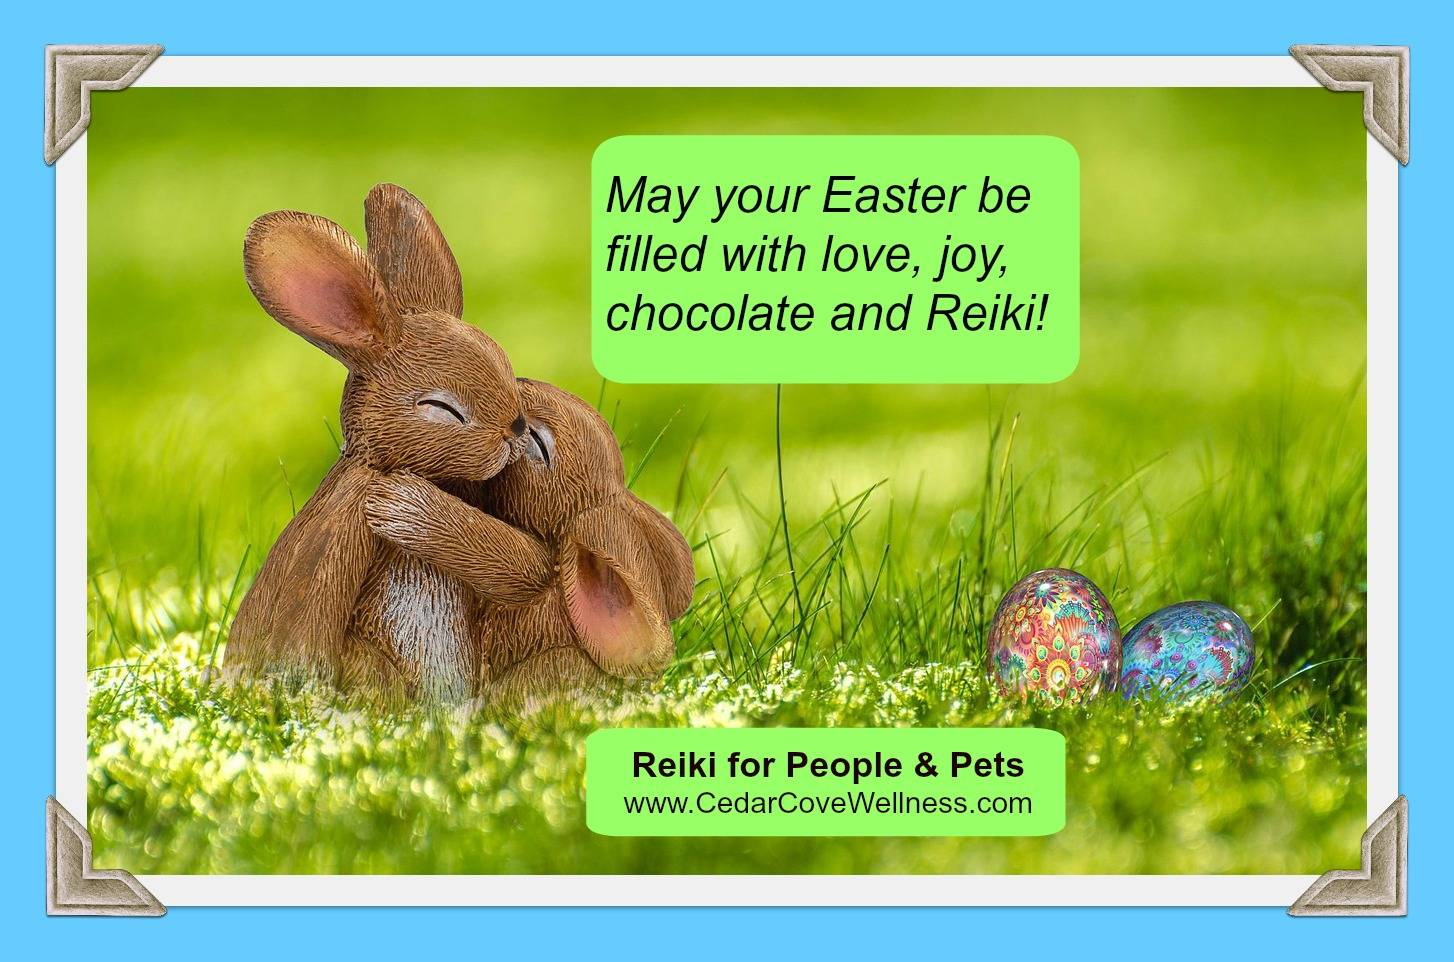 May your Easter be filled with love, joy, chocolate and Reiki!